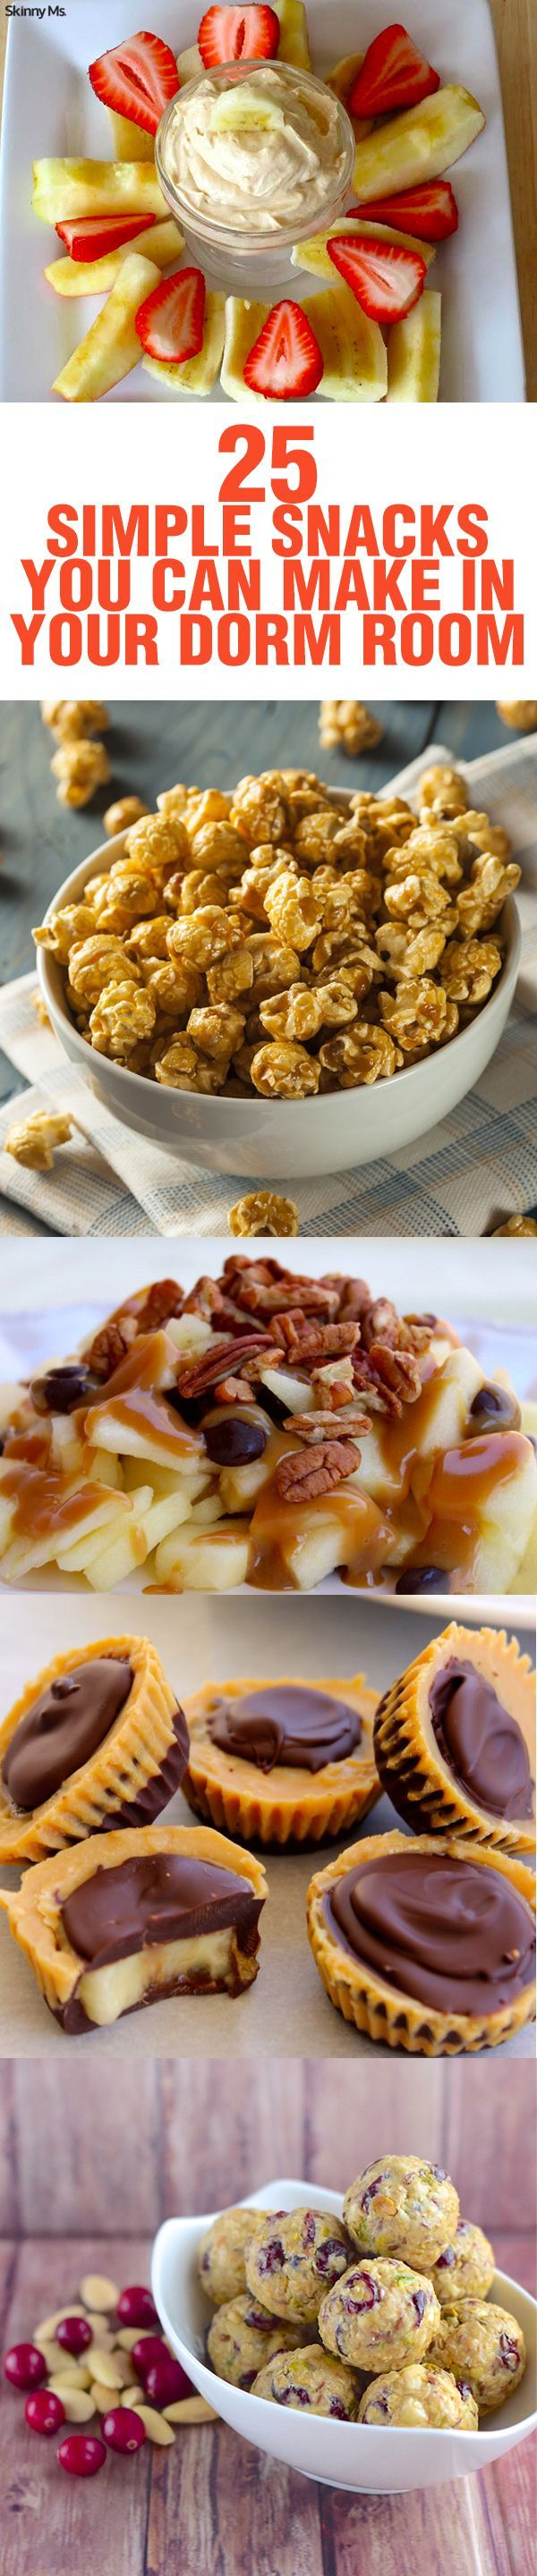 17 Best Images About Dorm Room Recipes On Pinterest | Microwave Recipes,  Ramen And How To Cook Pasta Part 81